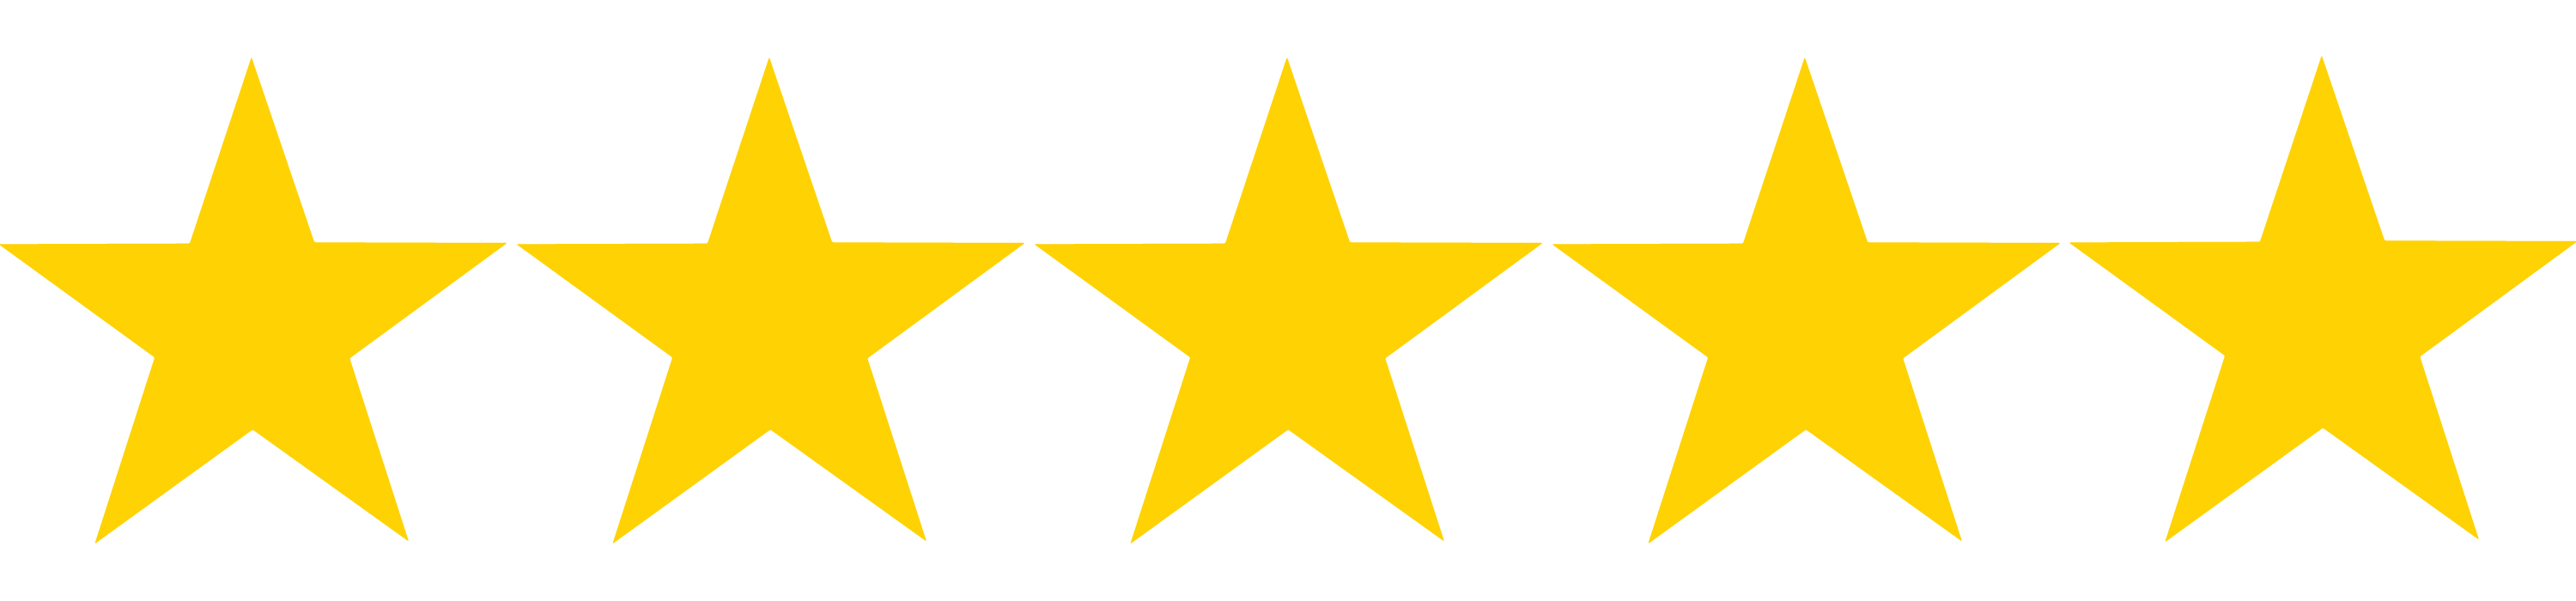 5 Stars Png Black Reviews Co Uk Stars - Clip Art Library #1185321 - PNG Images - PNGio